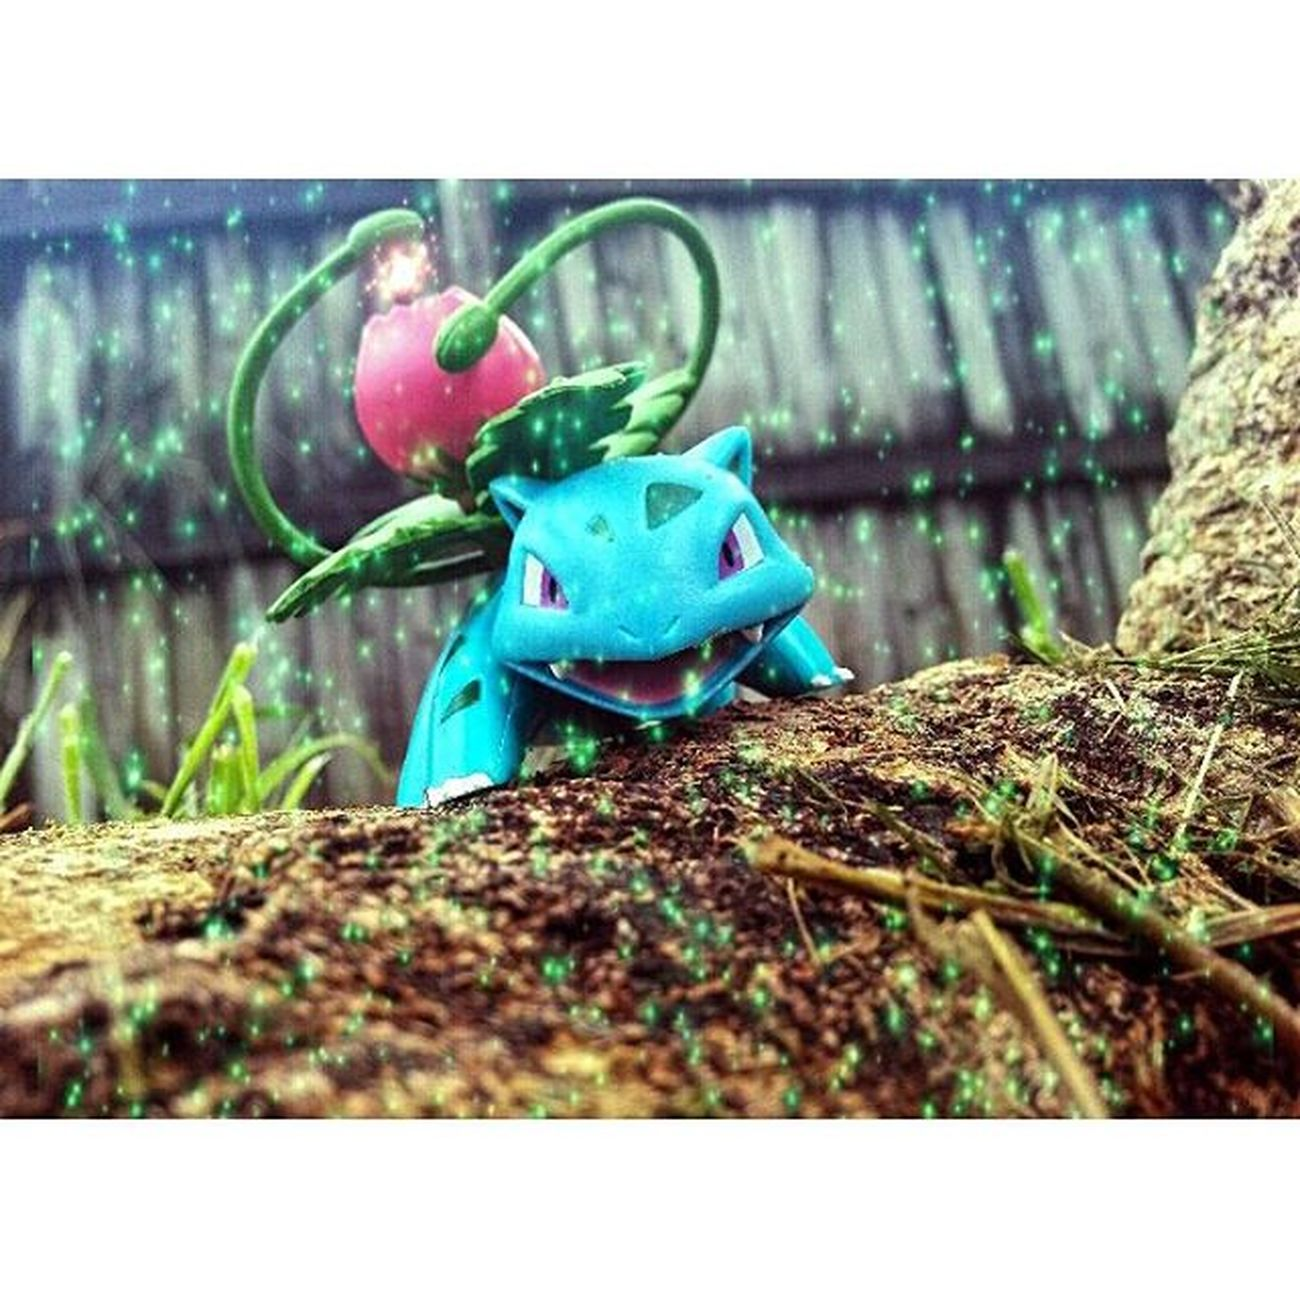 PokéJournal Entry No. 606: Ivysaur are known for being the most aggressive in the Bulbasaur evolutionary line. In battle it is not uncommon for Ivysaur to ready three attacks simultaneously in order to ensure its victory. Posableplanet Posableplanetpresents Ata_dreadnoughts Anarchyalliance Toyboners Toyoutsiders Toydiscovery Epictoyart RS_Toyshotz Toyslagram Toypops2 Toyplanet Toypizza Pokémon Pocketmonsters Pikachu Anime Manga Toycrewbuddies Toycommunity Toyphotography Zifu_toys Toysphotogram nerdshit nogods_justmonsters justanothertoygroup